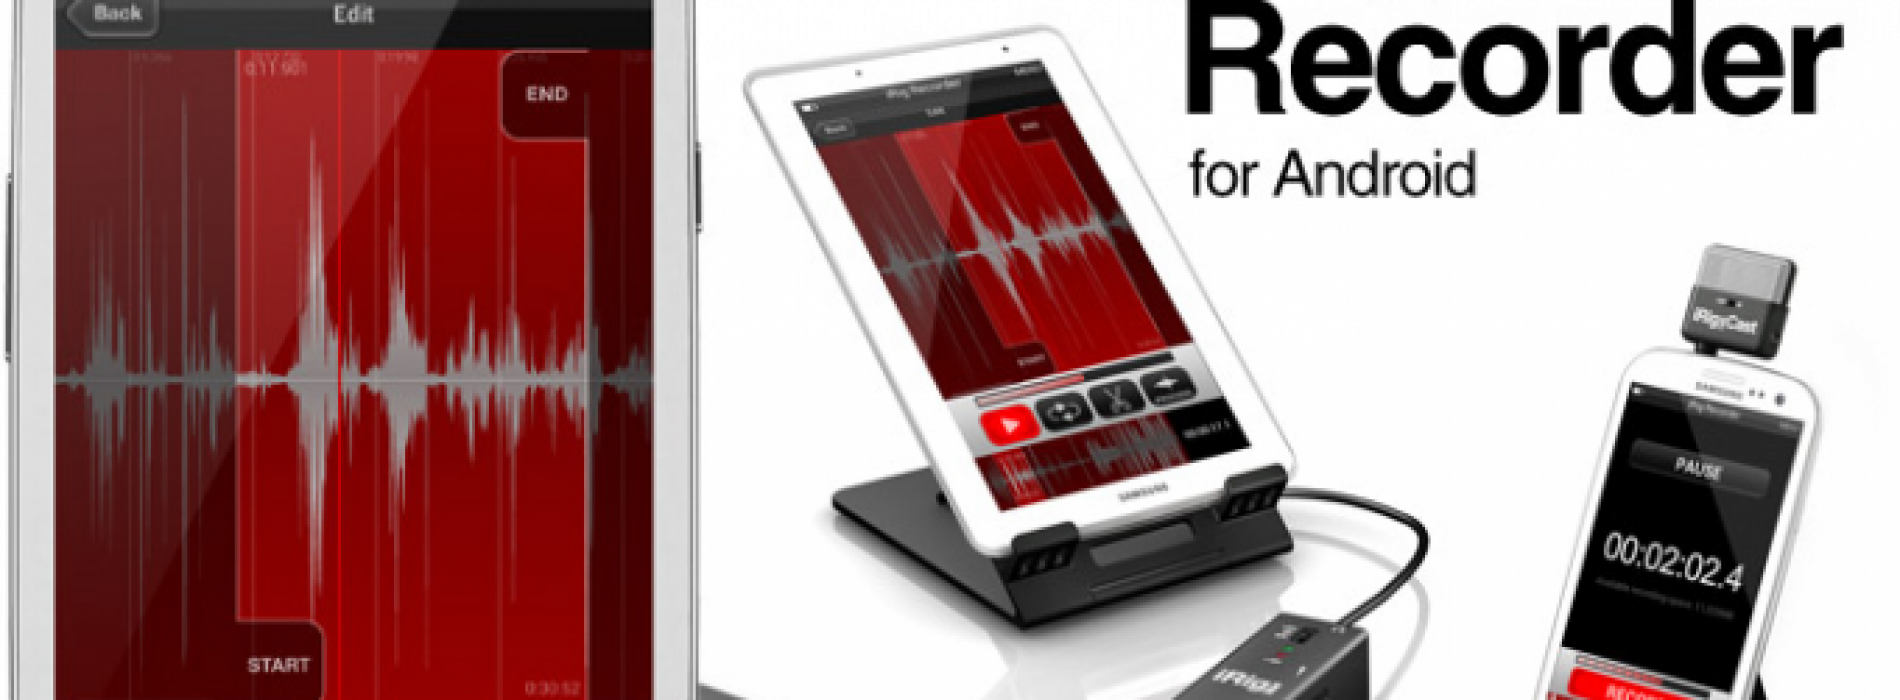 iRig Recorder to be available for Android by the end of January